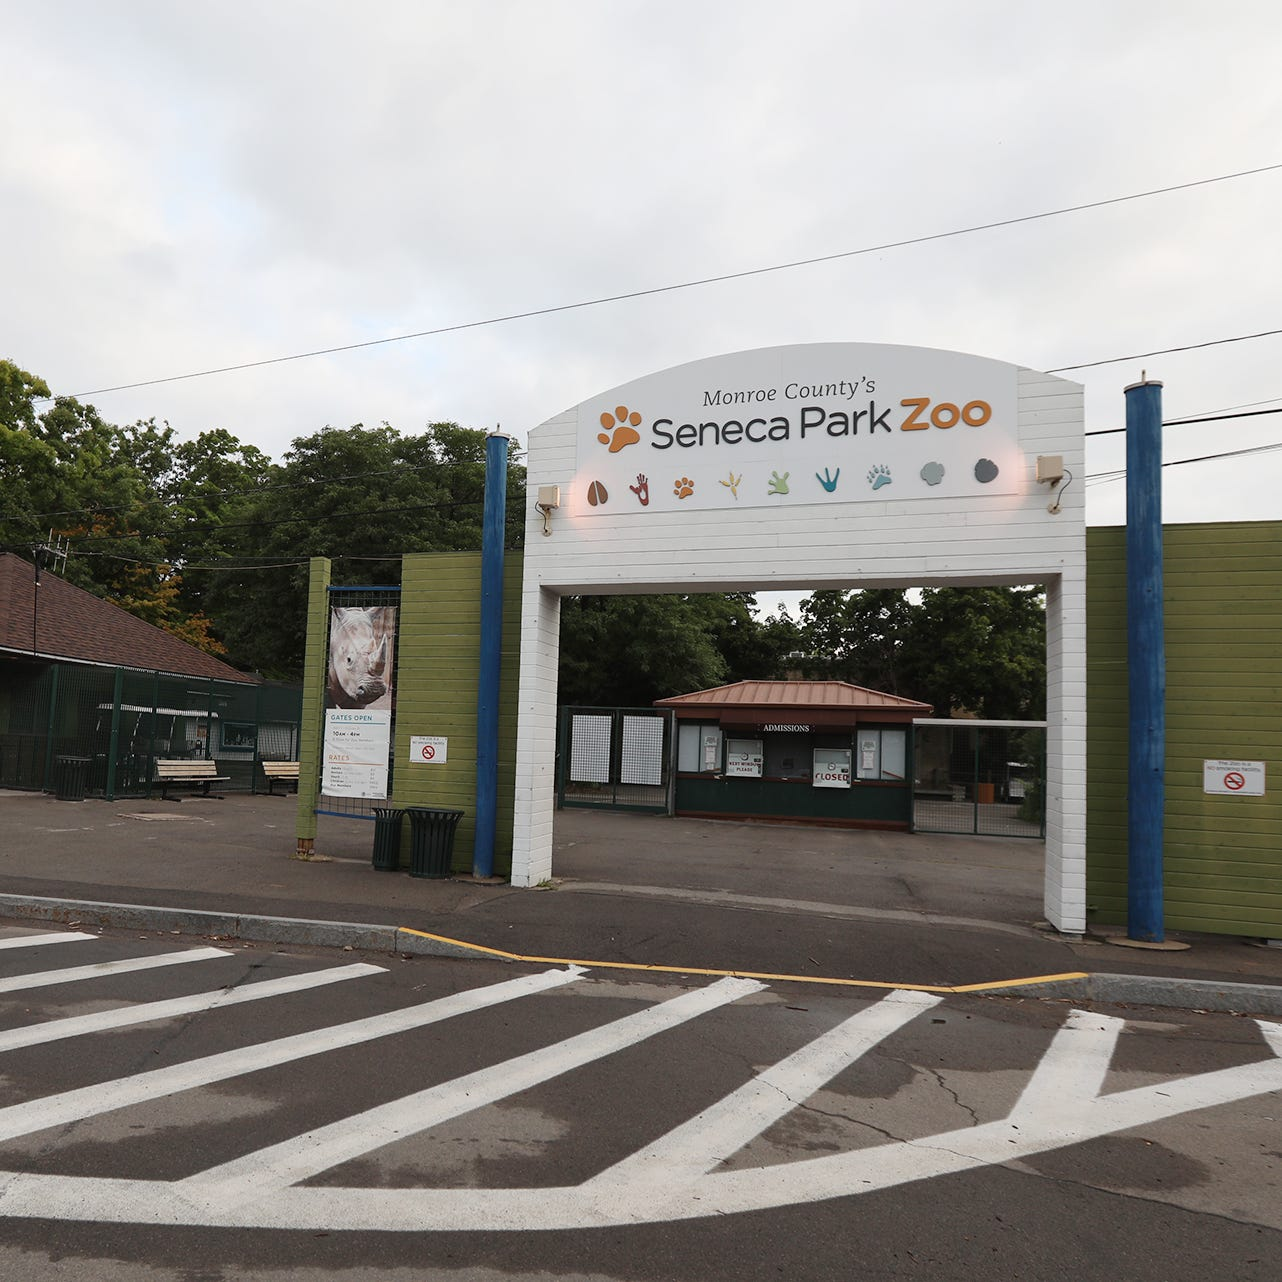 Former director of education at zoo says age discrimination behind his dismissal